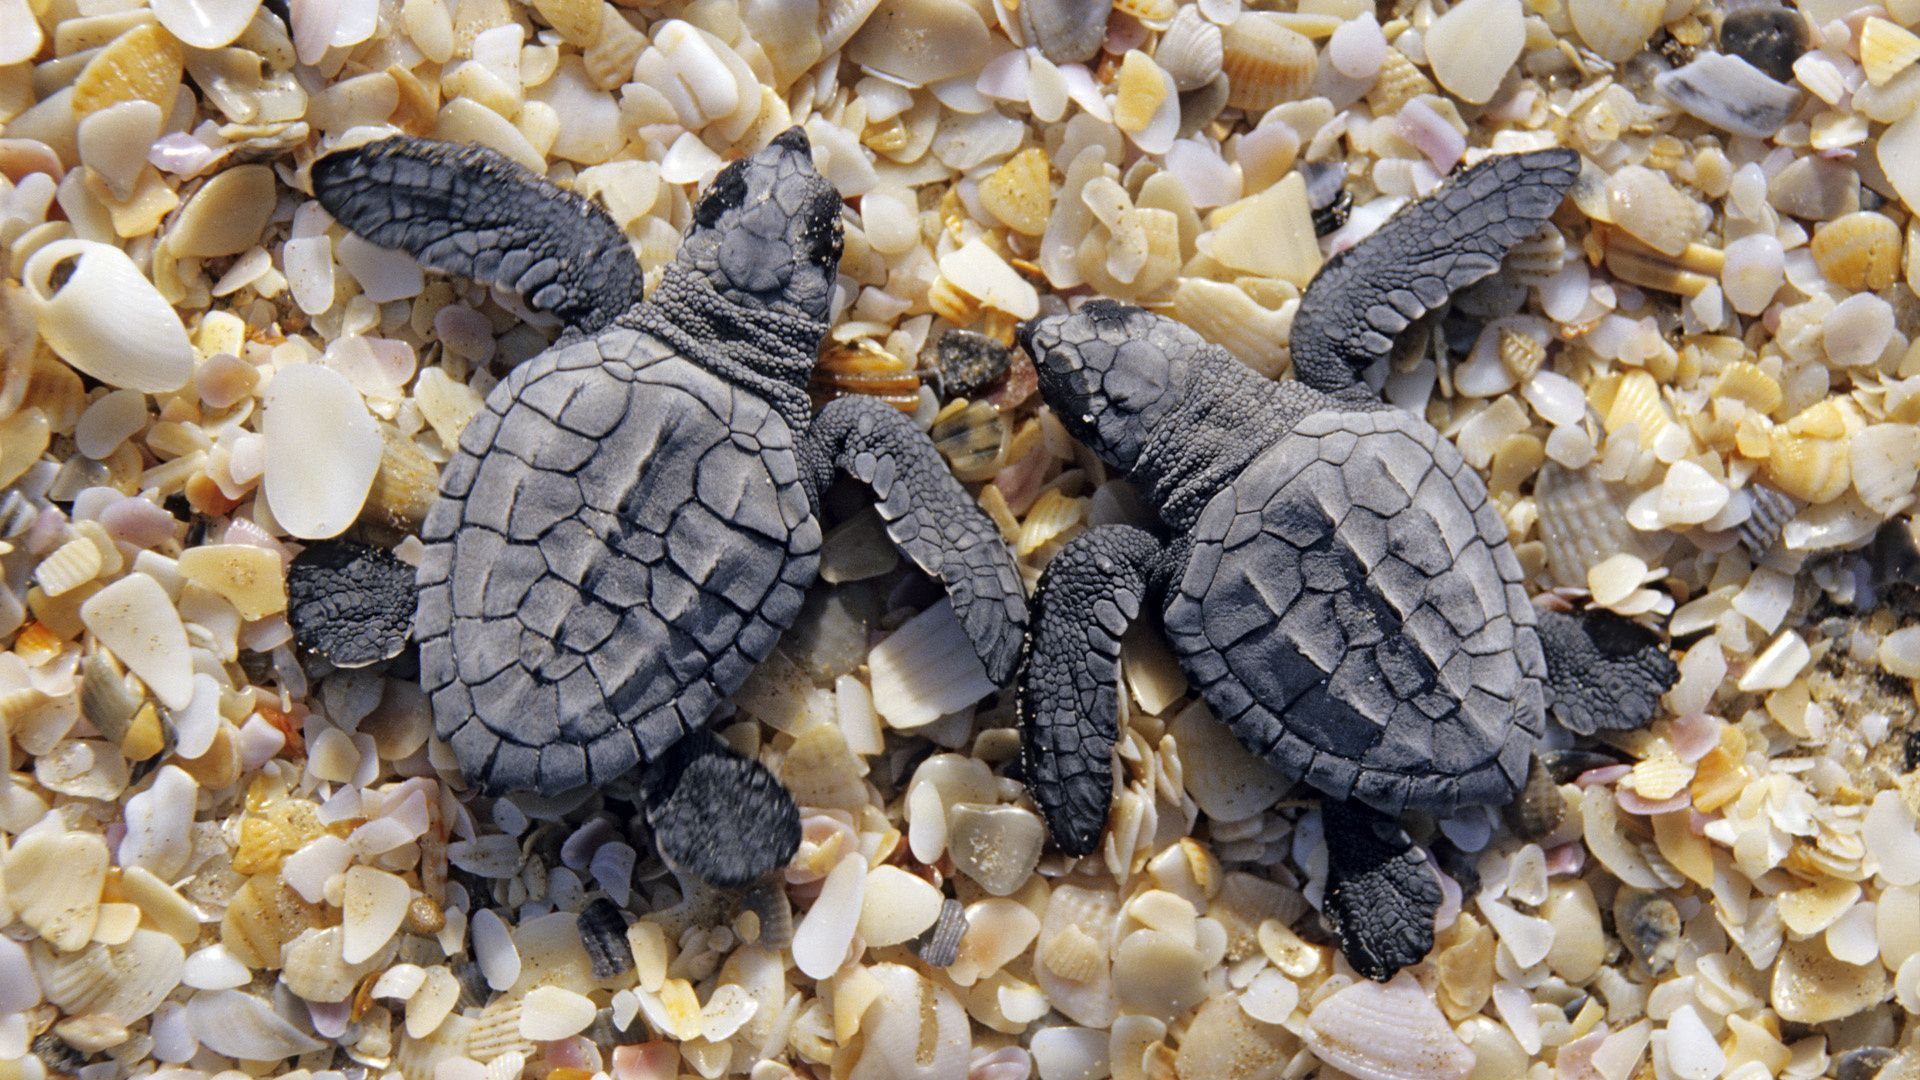 Turtles With Shells